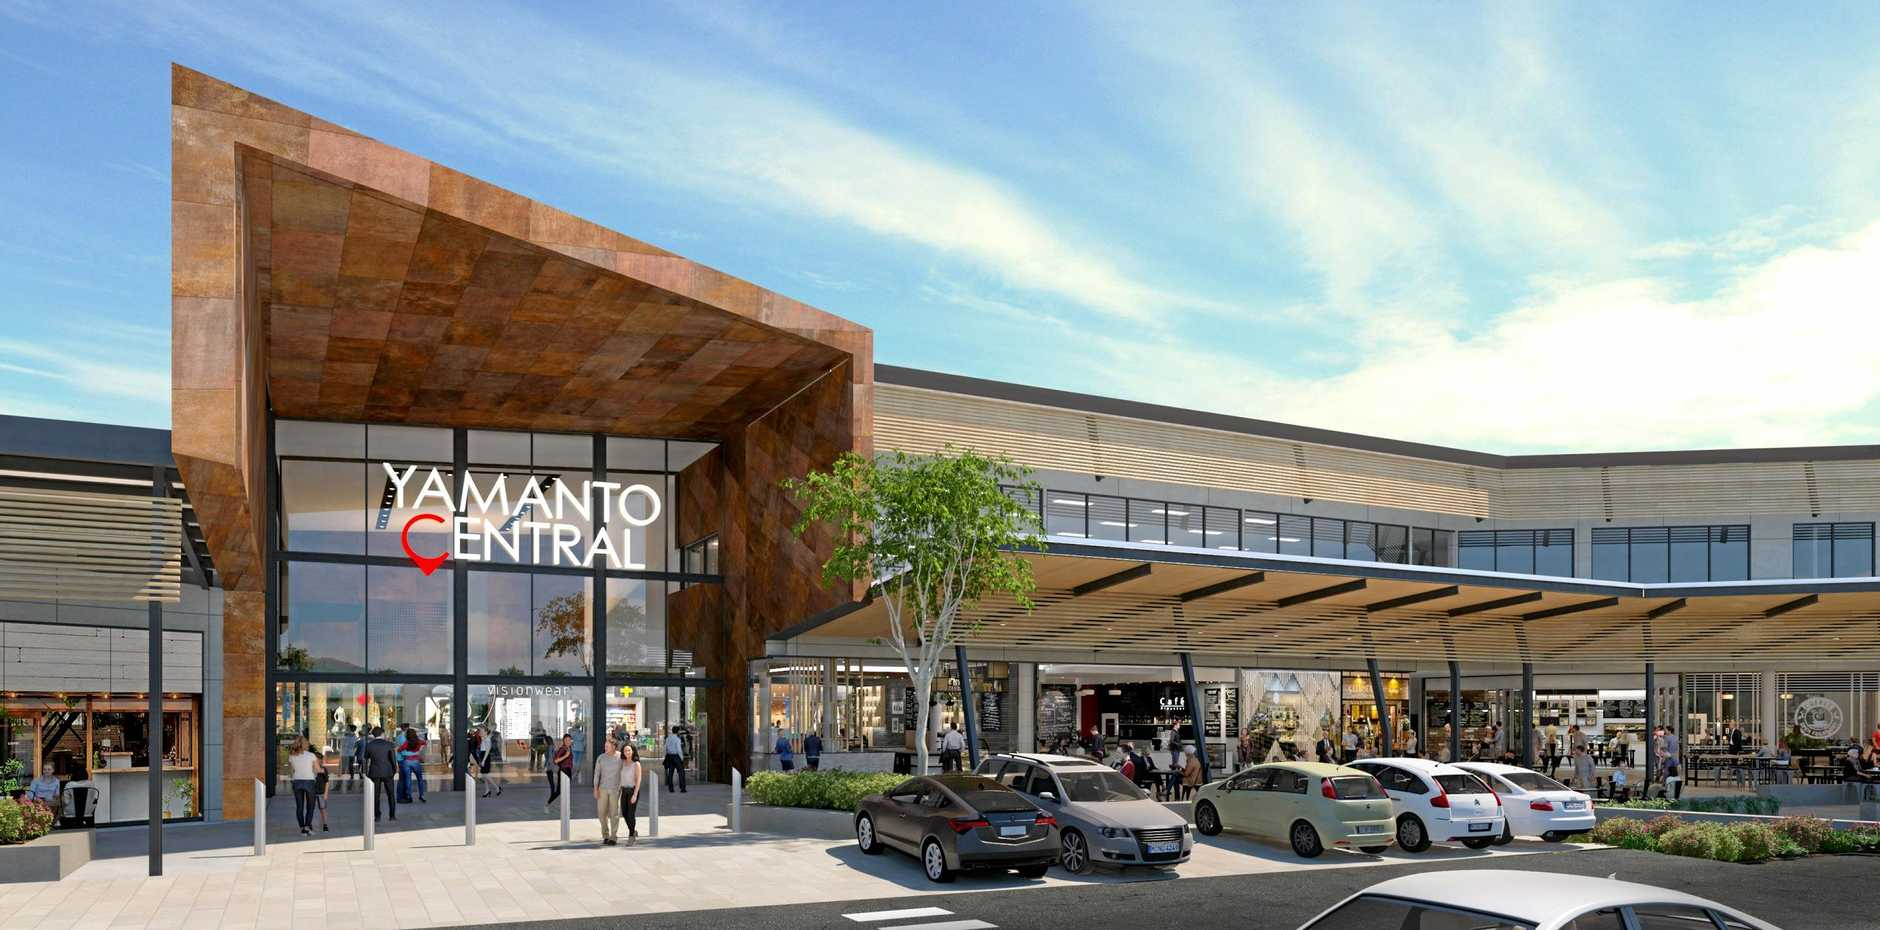 Artist renders of Yamanto Central.